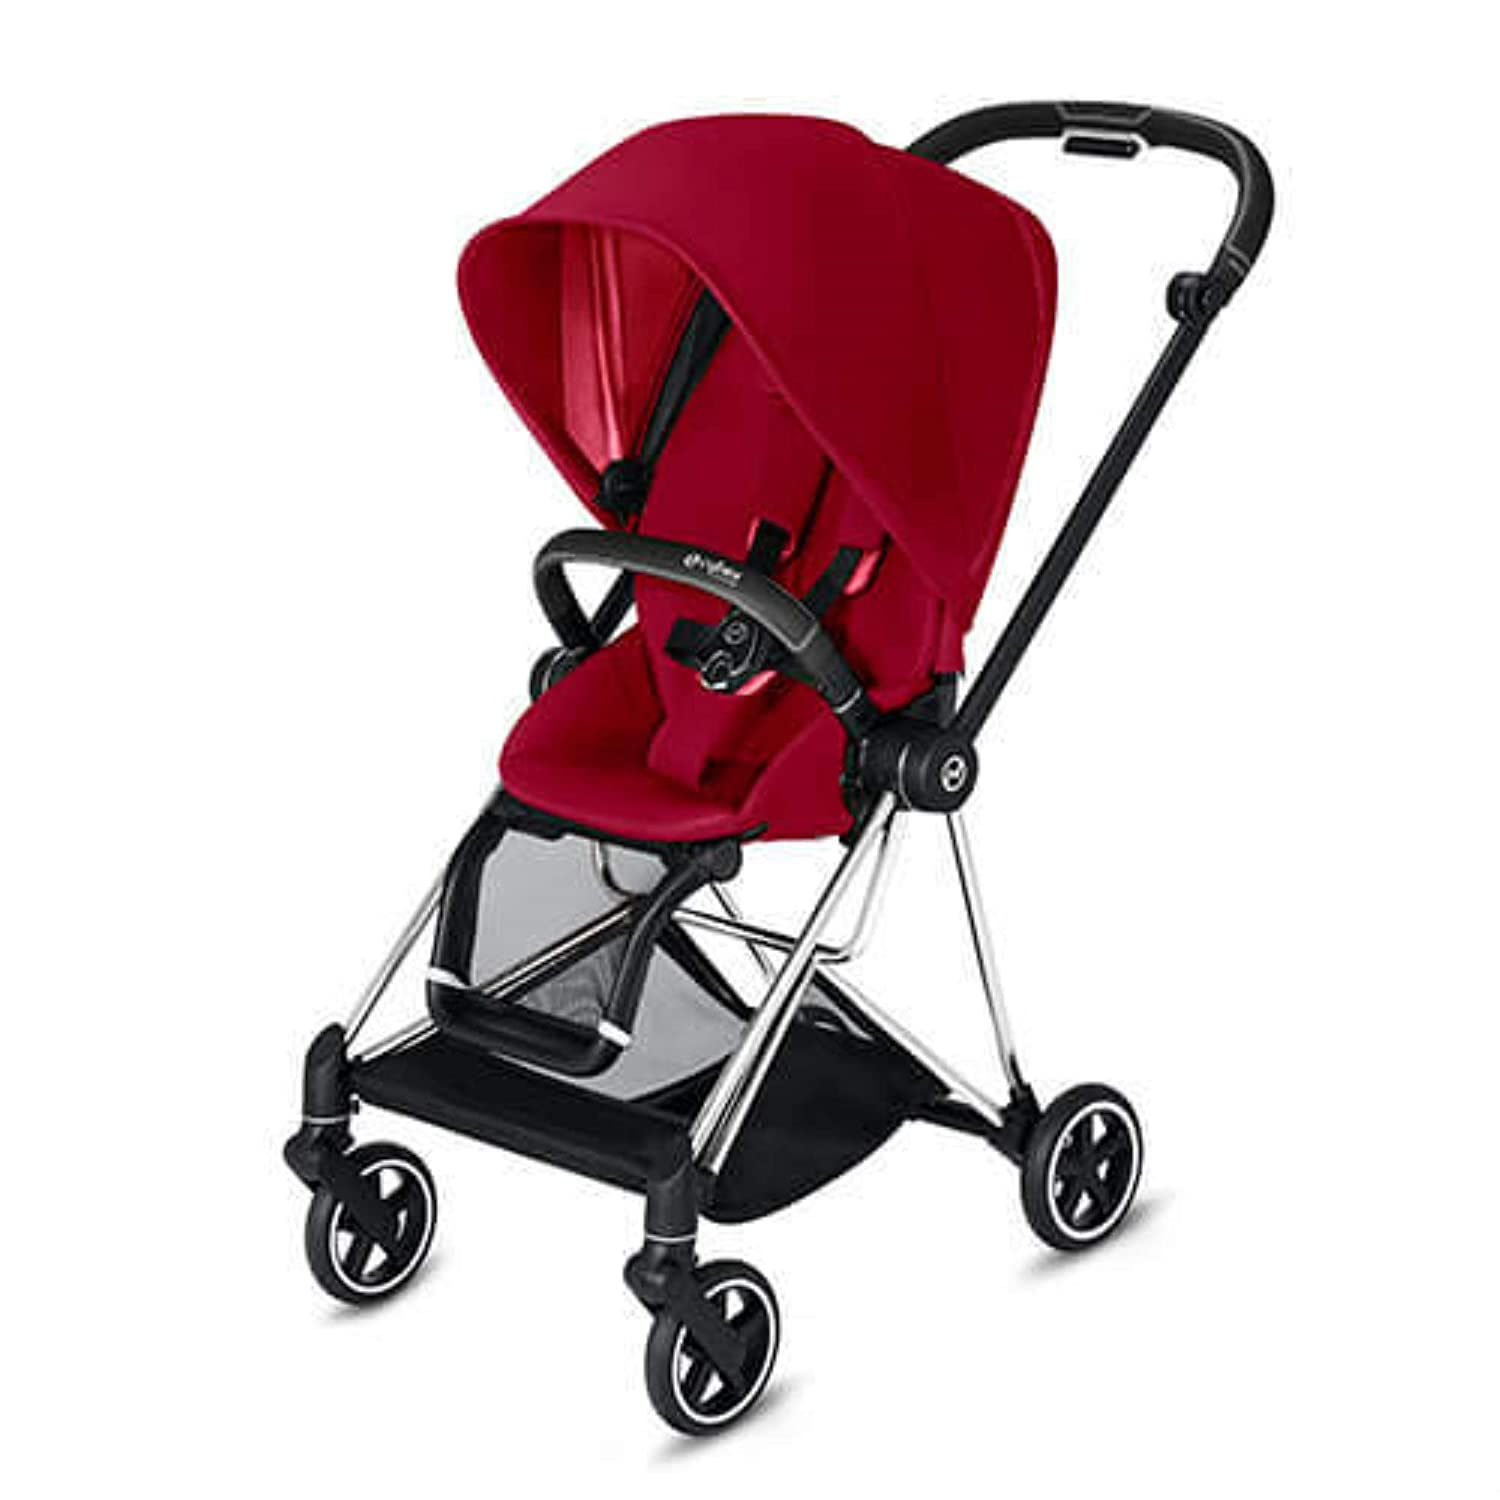 Cybex Mios 2 Complete Stroller, One-Hand Compact Fold, Reversible Seat, Smooth Ride All-Wheel Suspension, Extra Storage, Adjustable Leg Rest, True Red Seat with Chrome/Black Frame